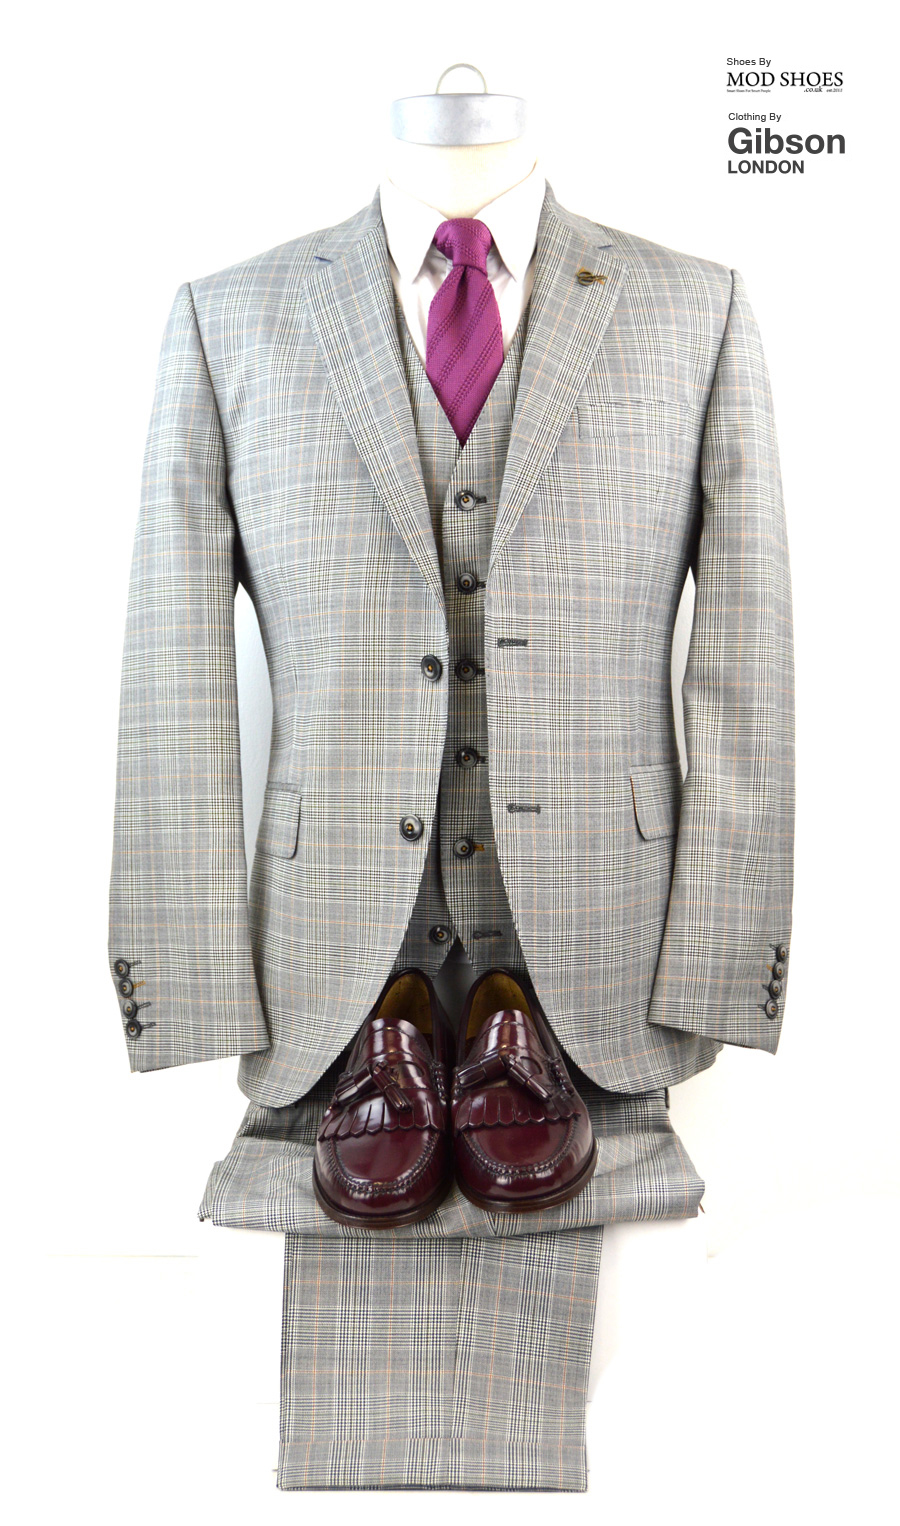 modshoes-oxblood-tassel-loafwers-with-prince-of-wales-suit